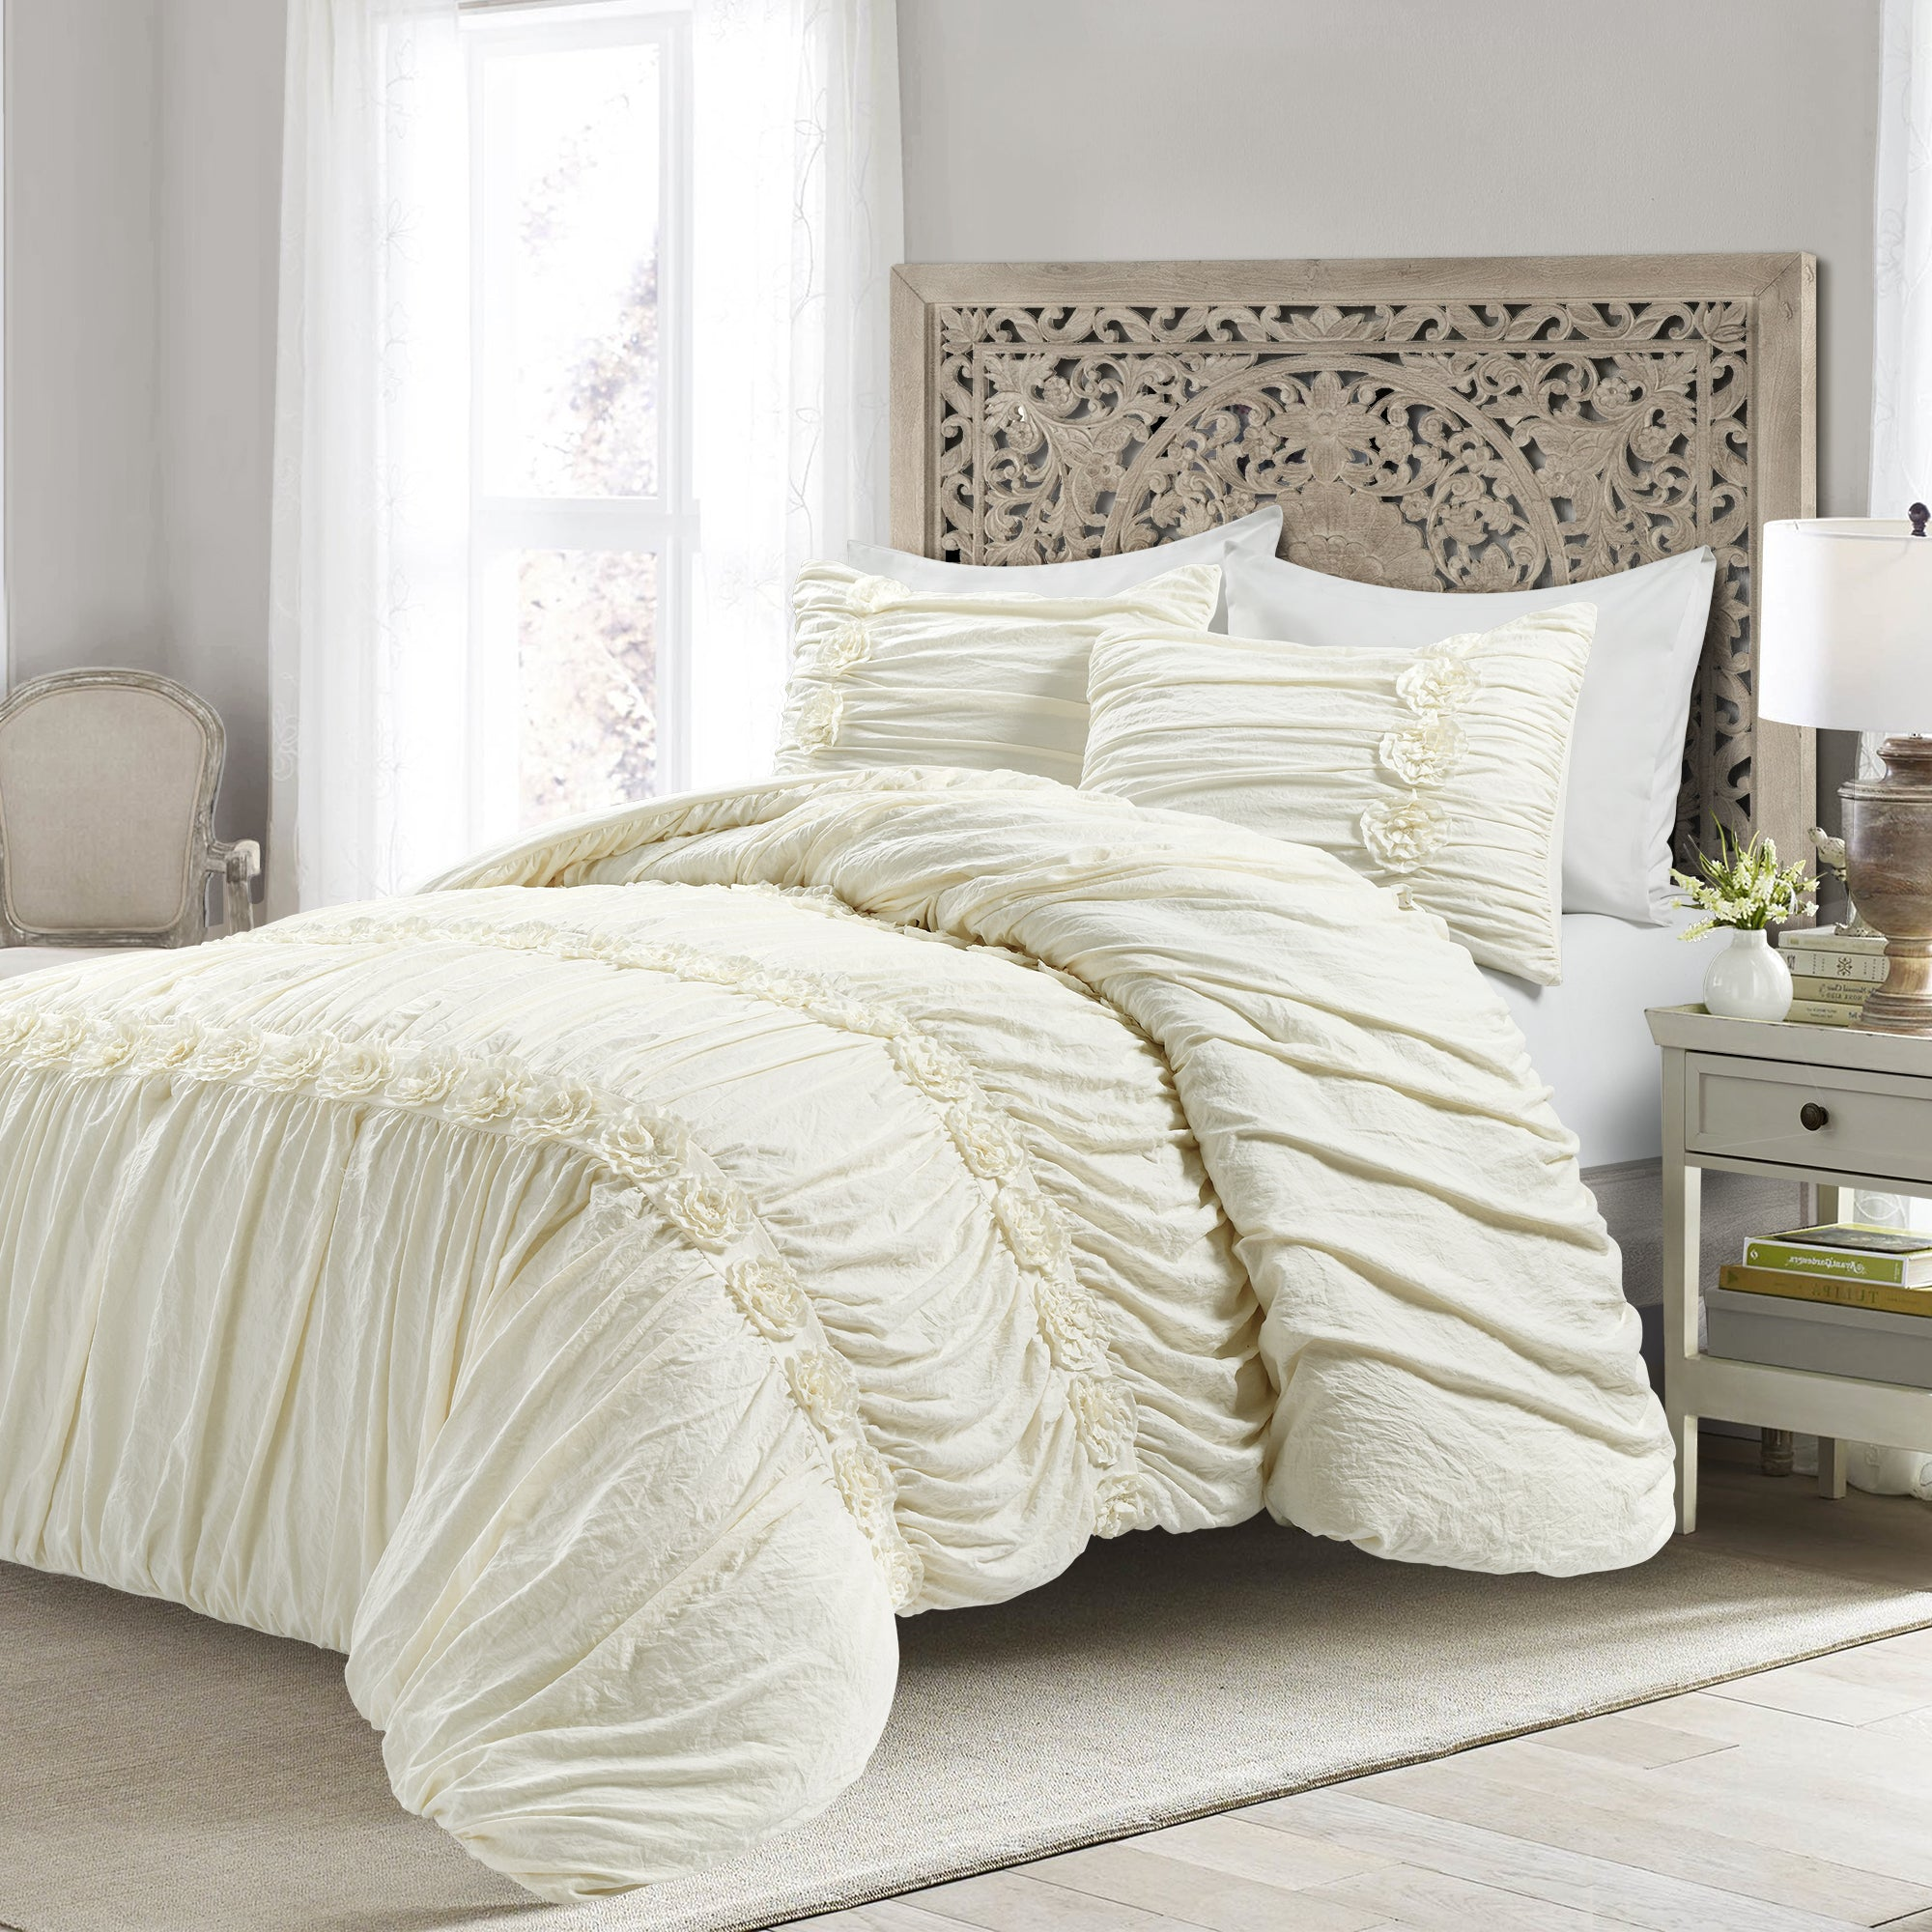 darla 3 piece comforter set full queen ivory